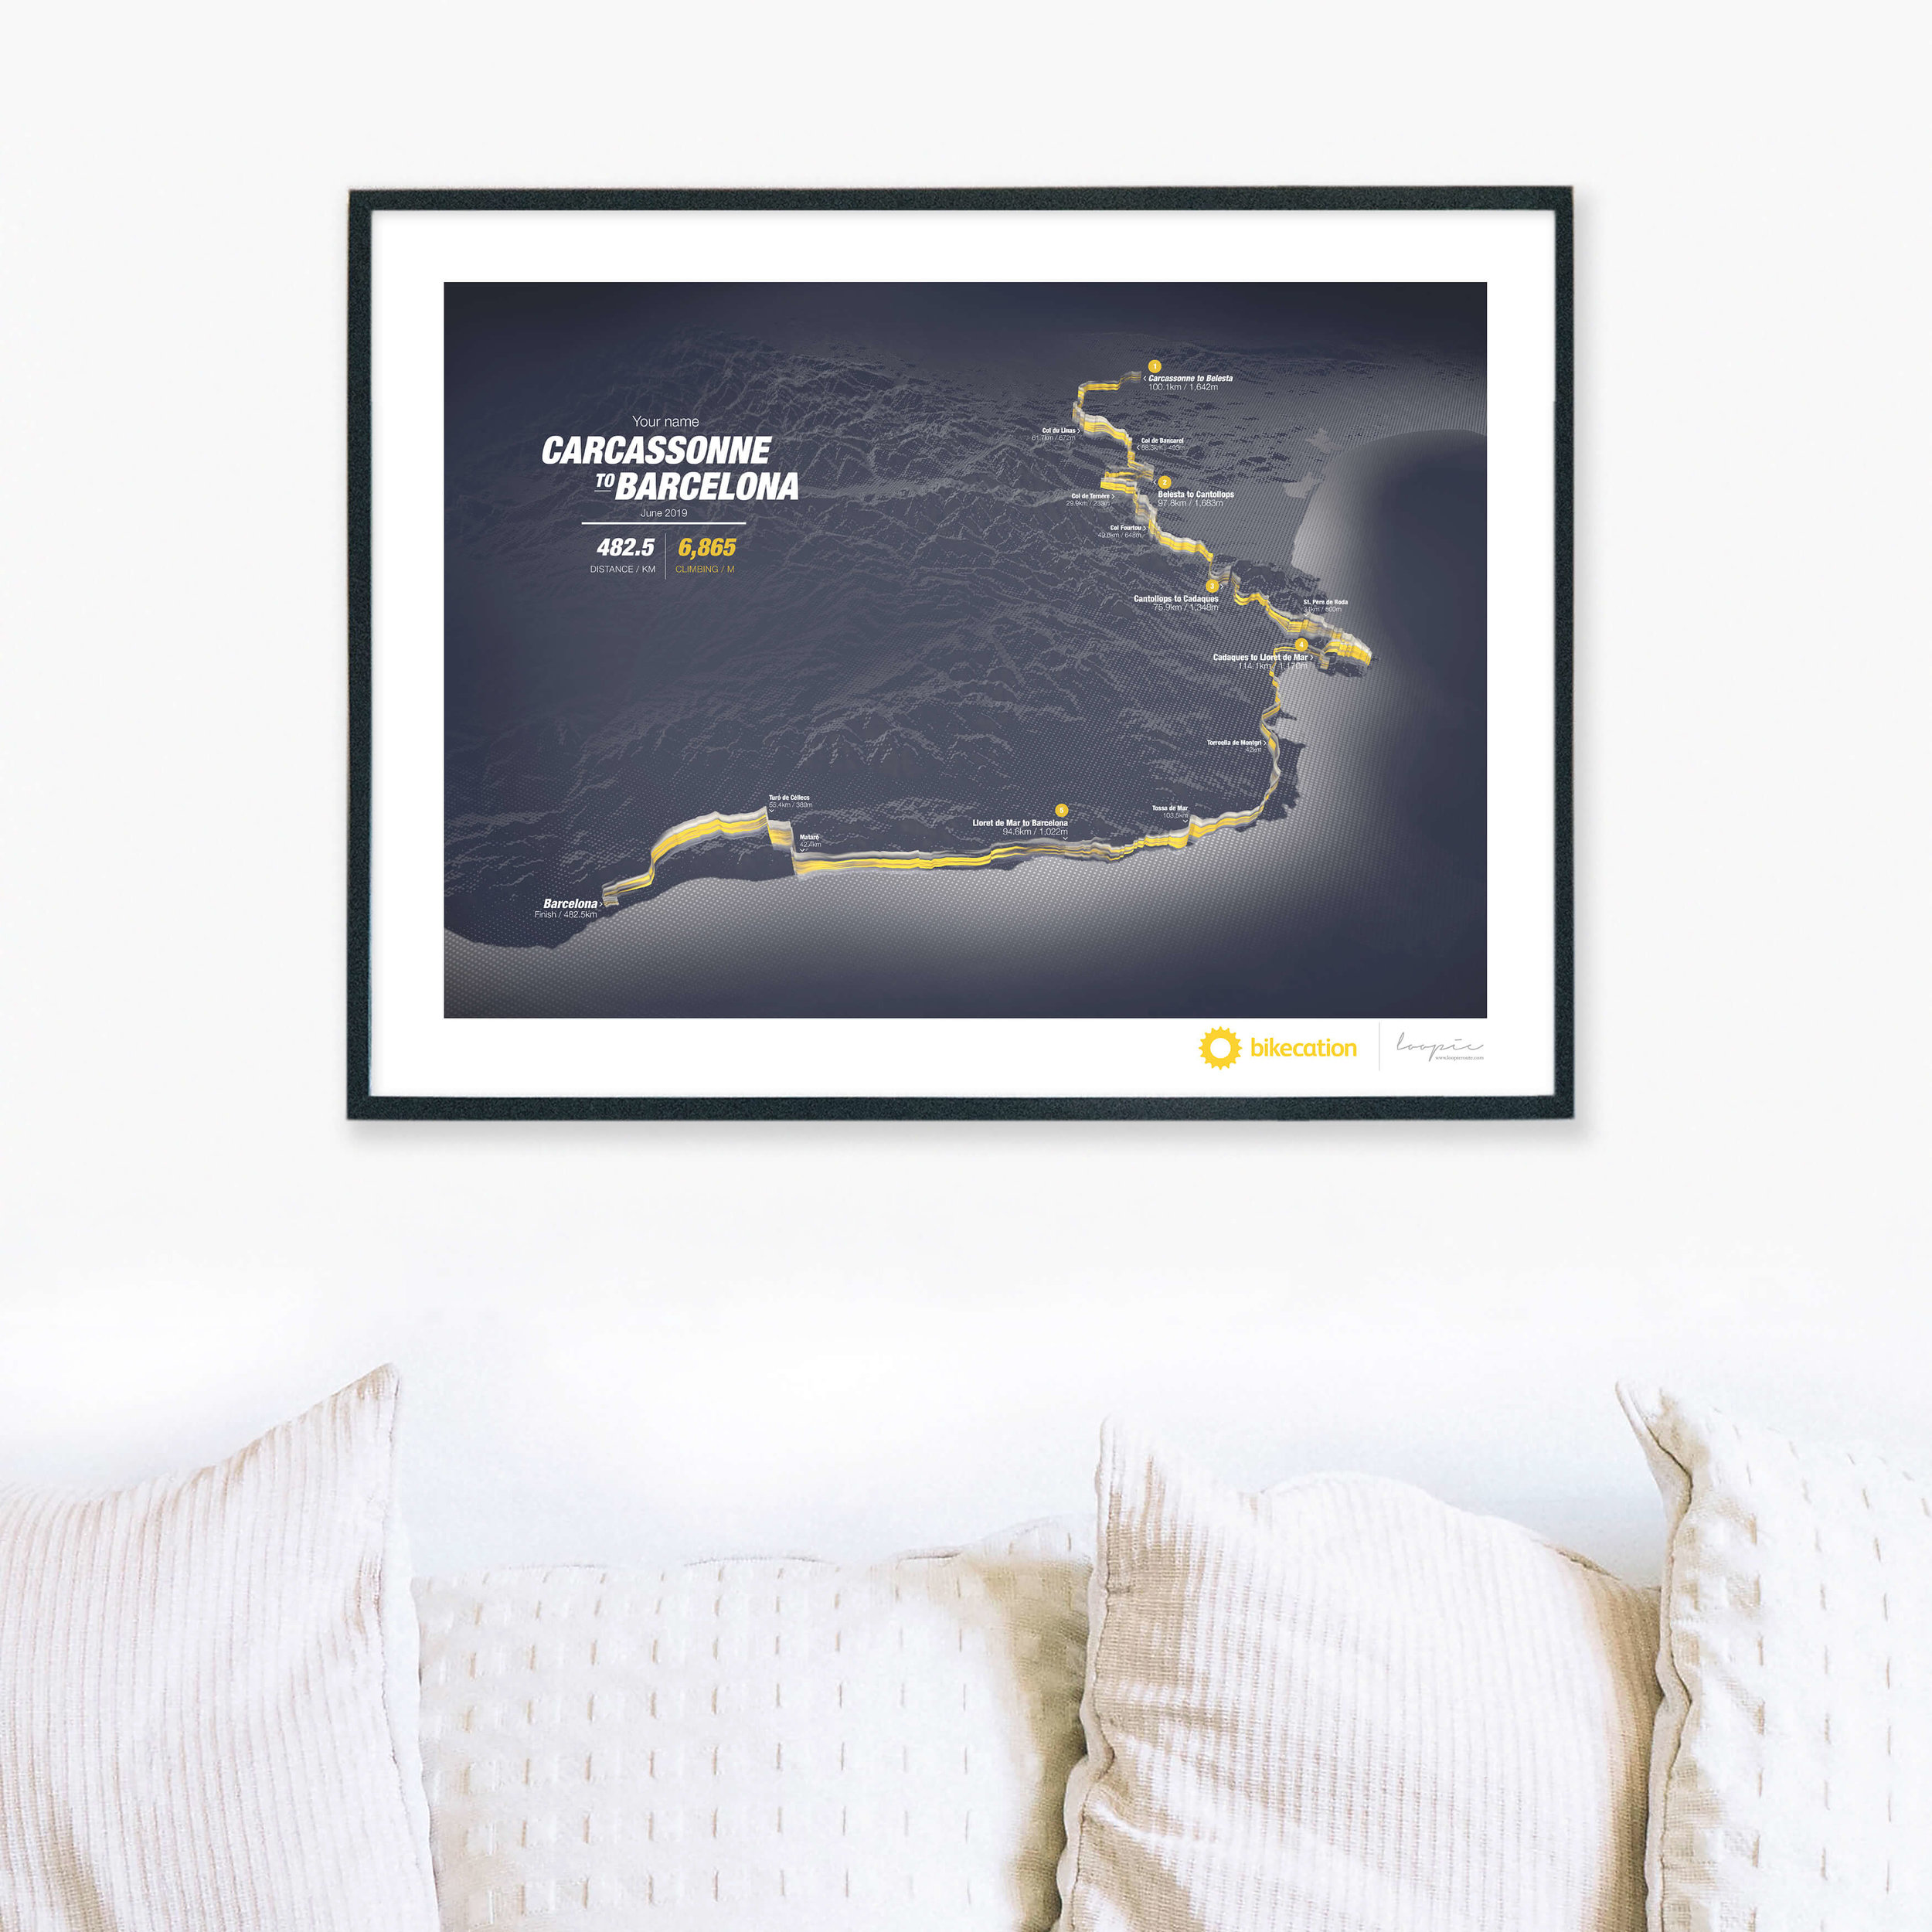 Carcasonne to Barcelona - Personalised GPS prints of your Bikecation adventure